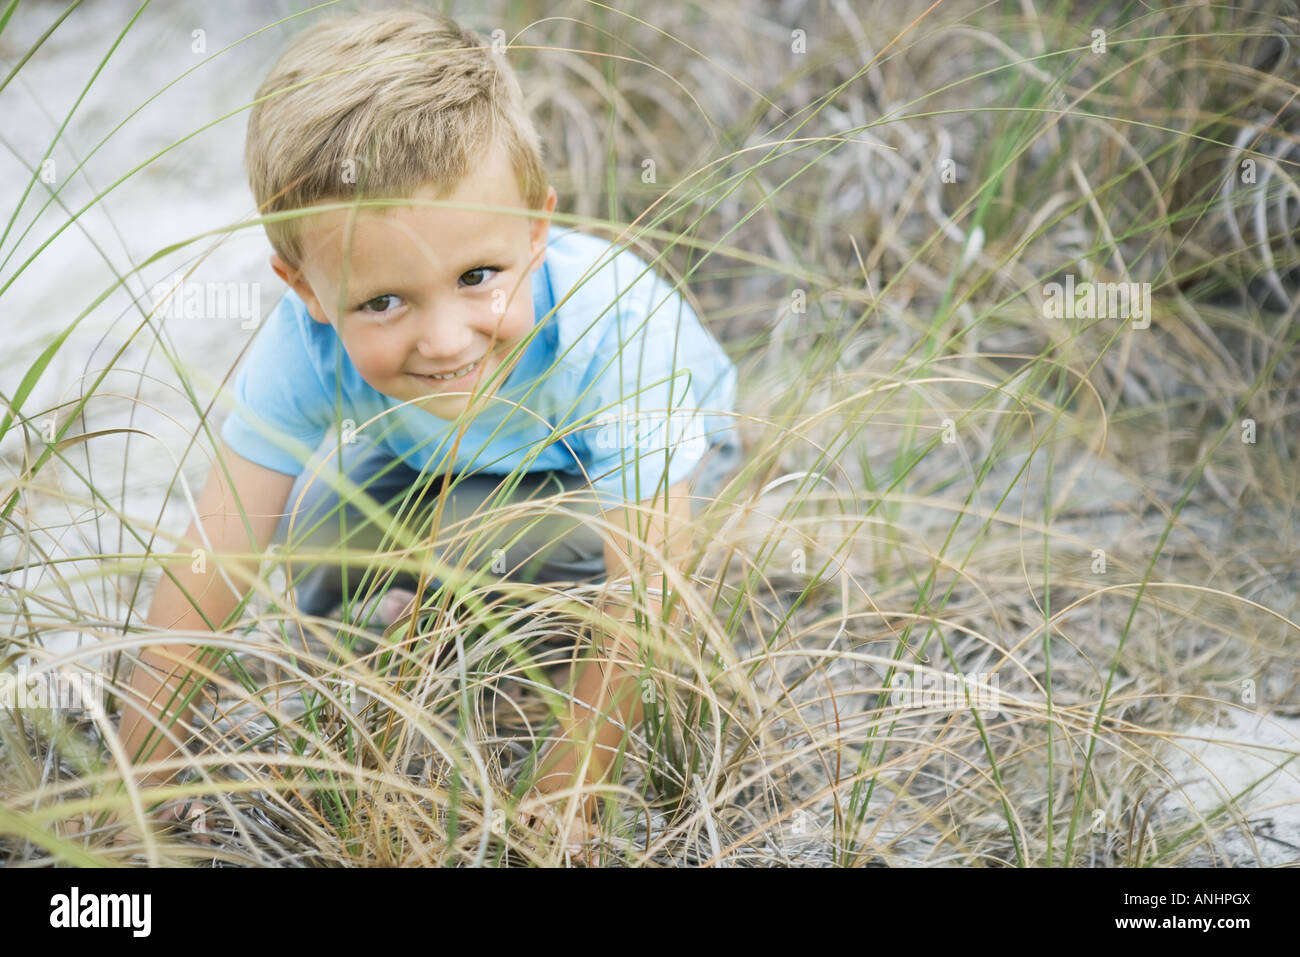 Young boy crouching in tall grass, looking away, smiling - Stock Image